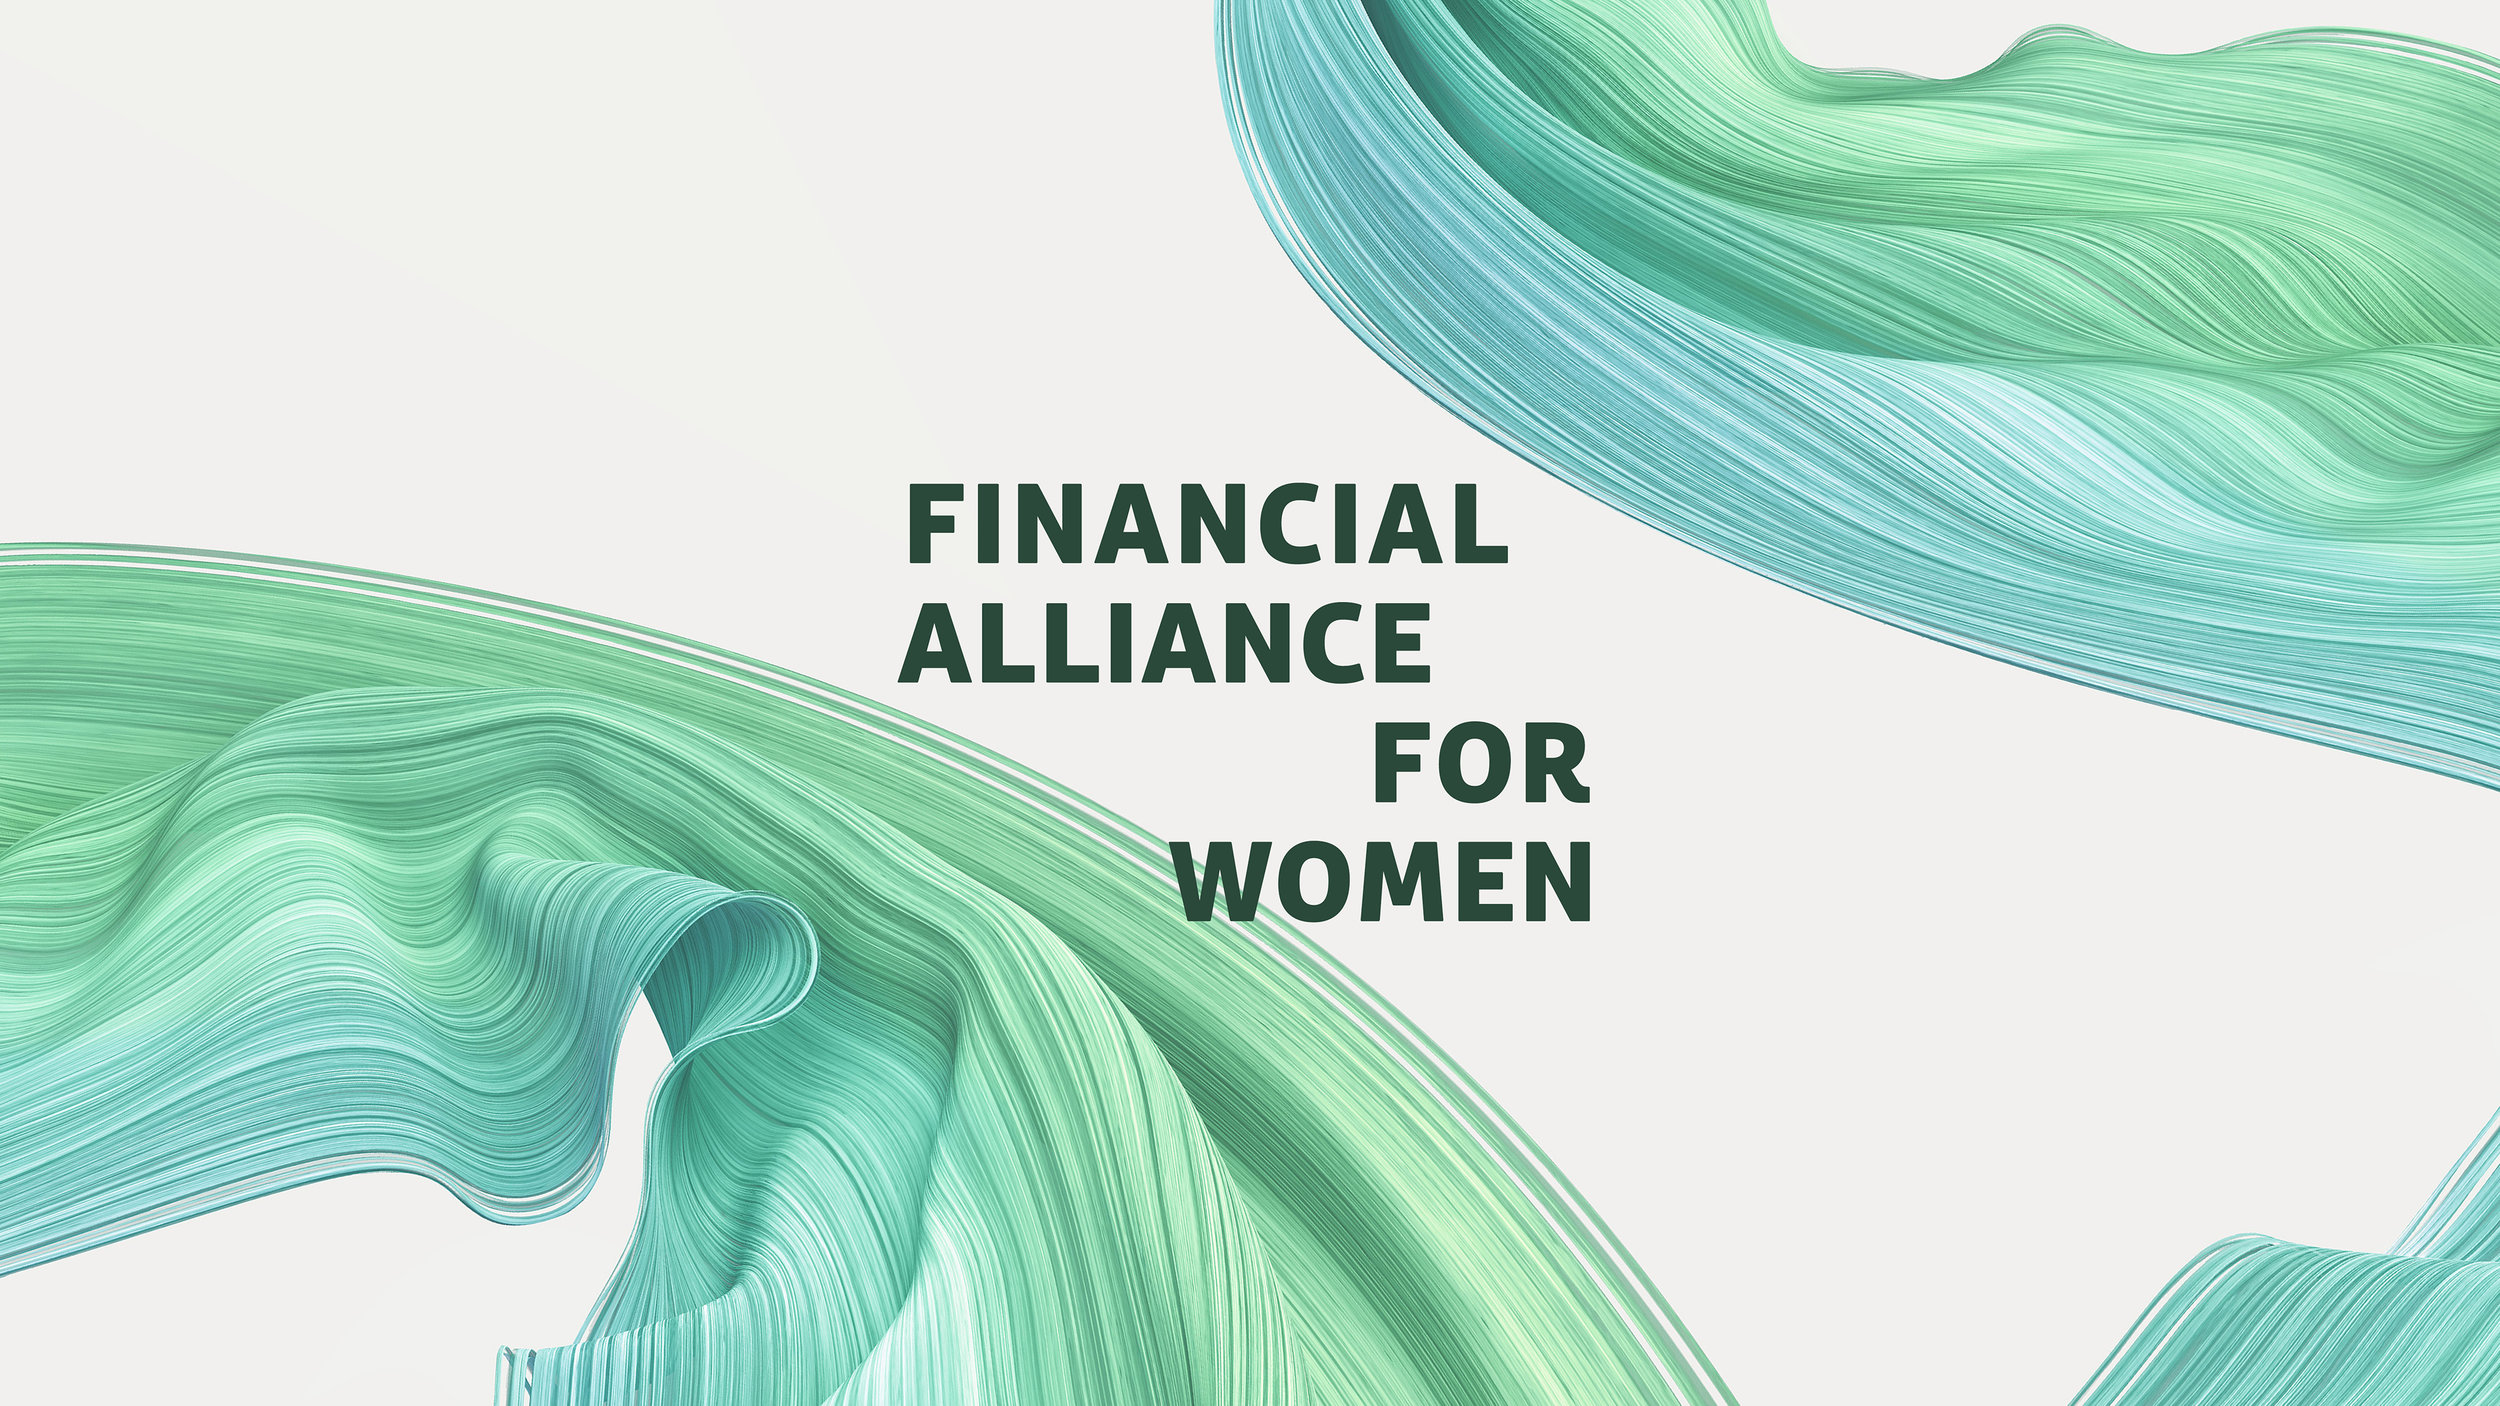 Design Bridge - Financial Alliance for Women1.jpg